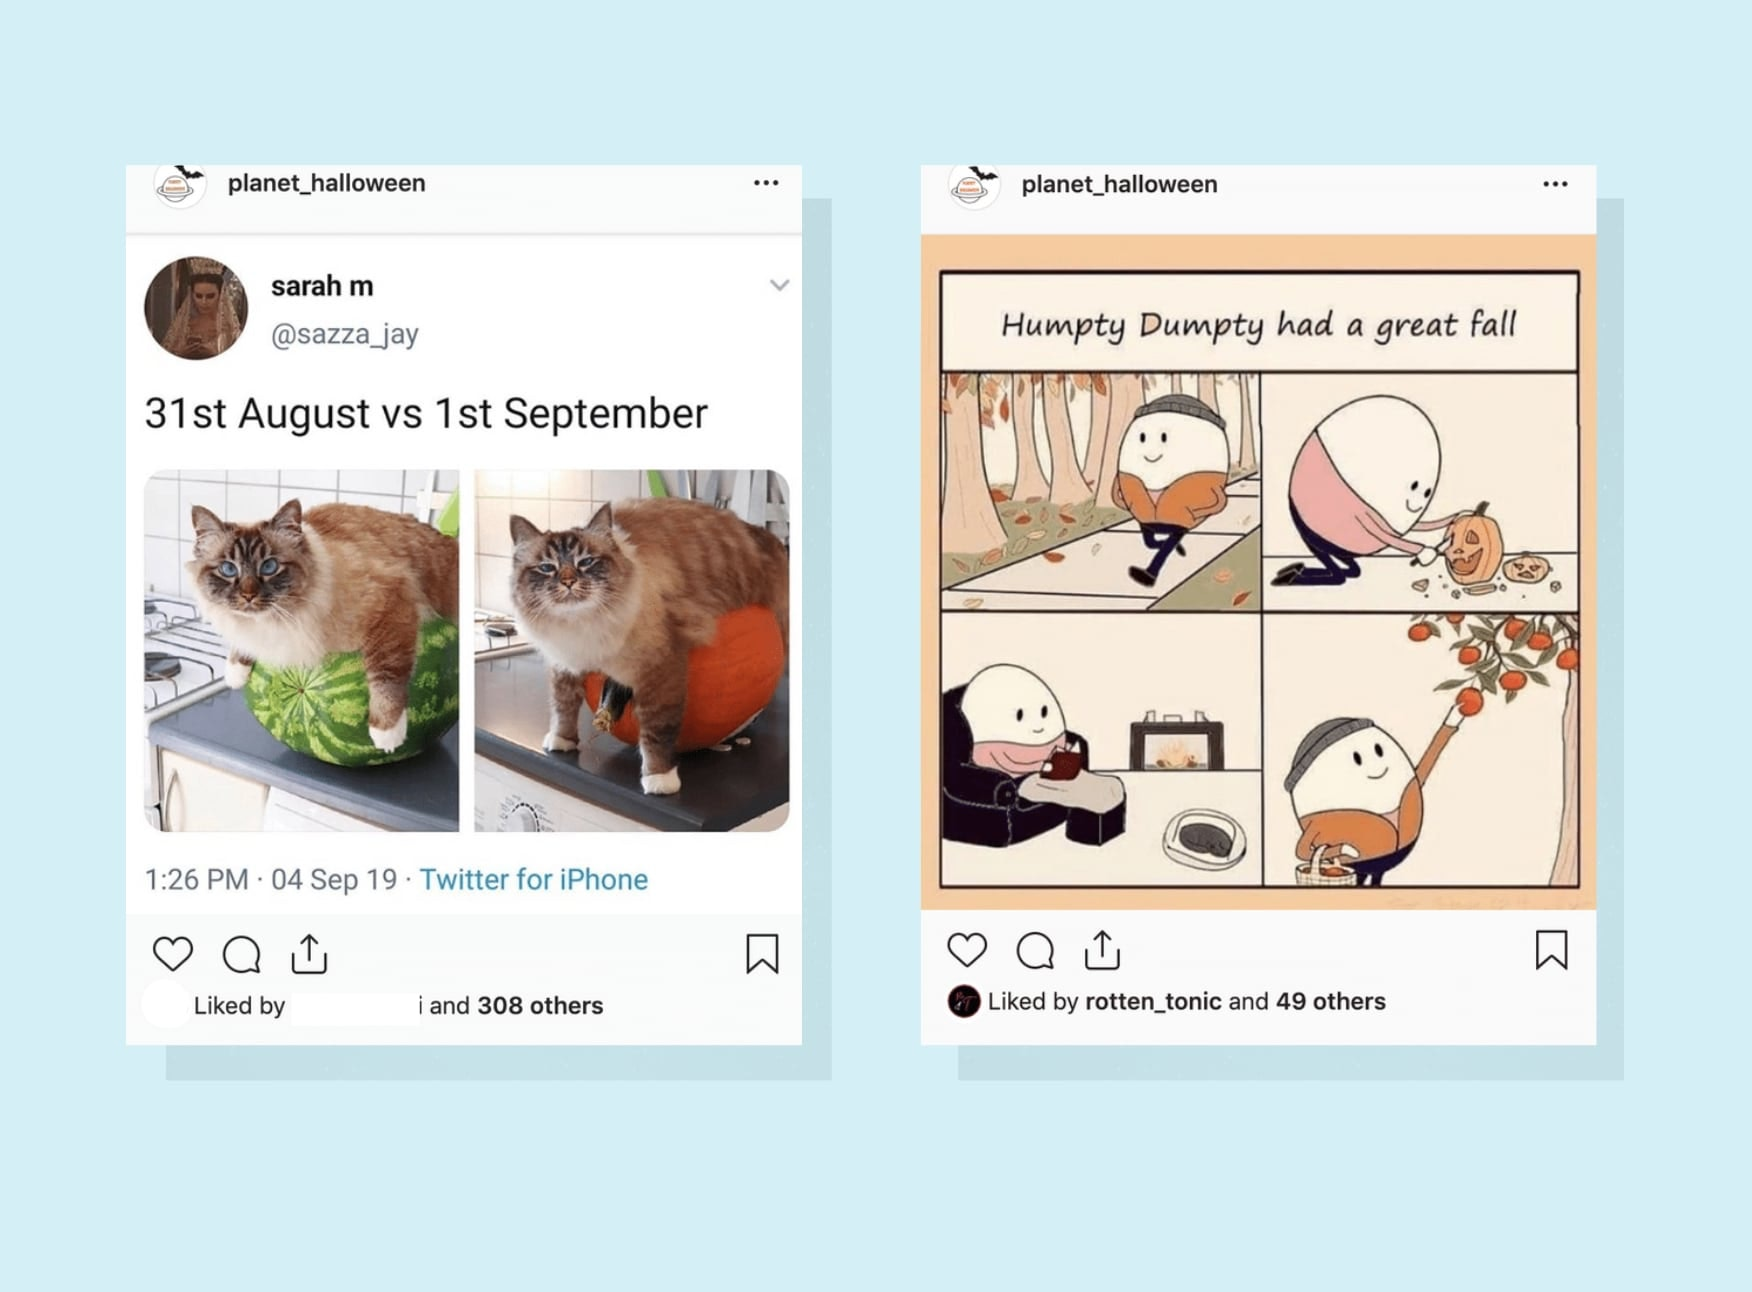 Screenshots of two fall-themed Instagram posts